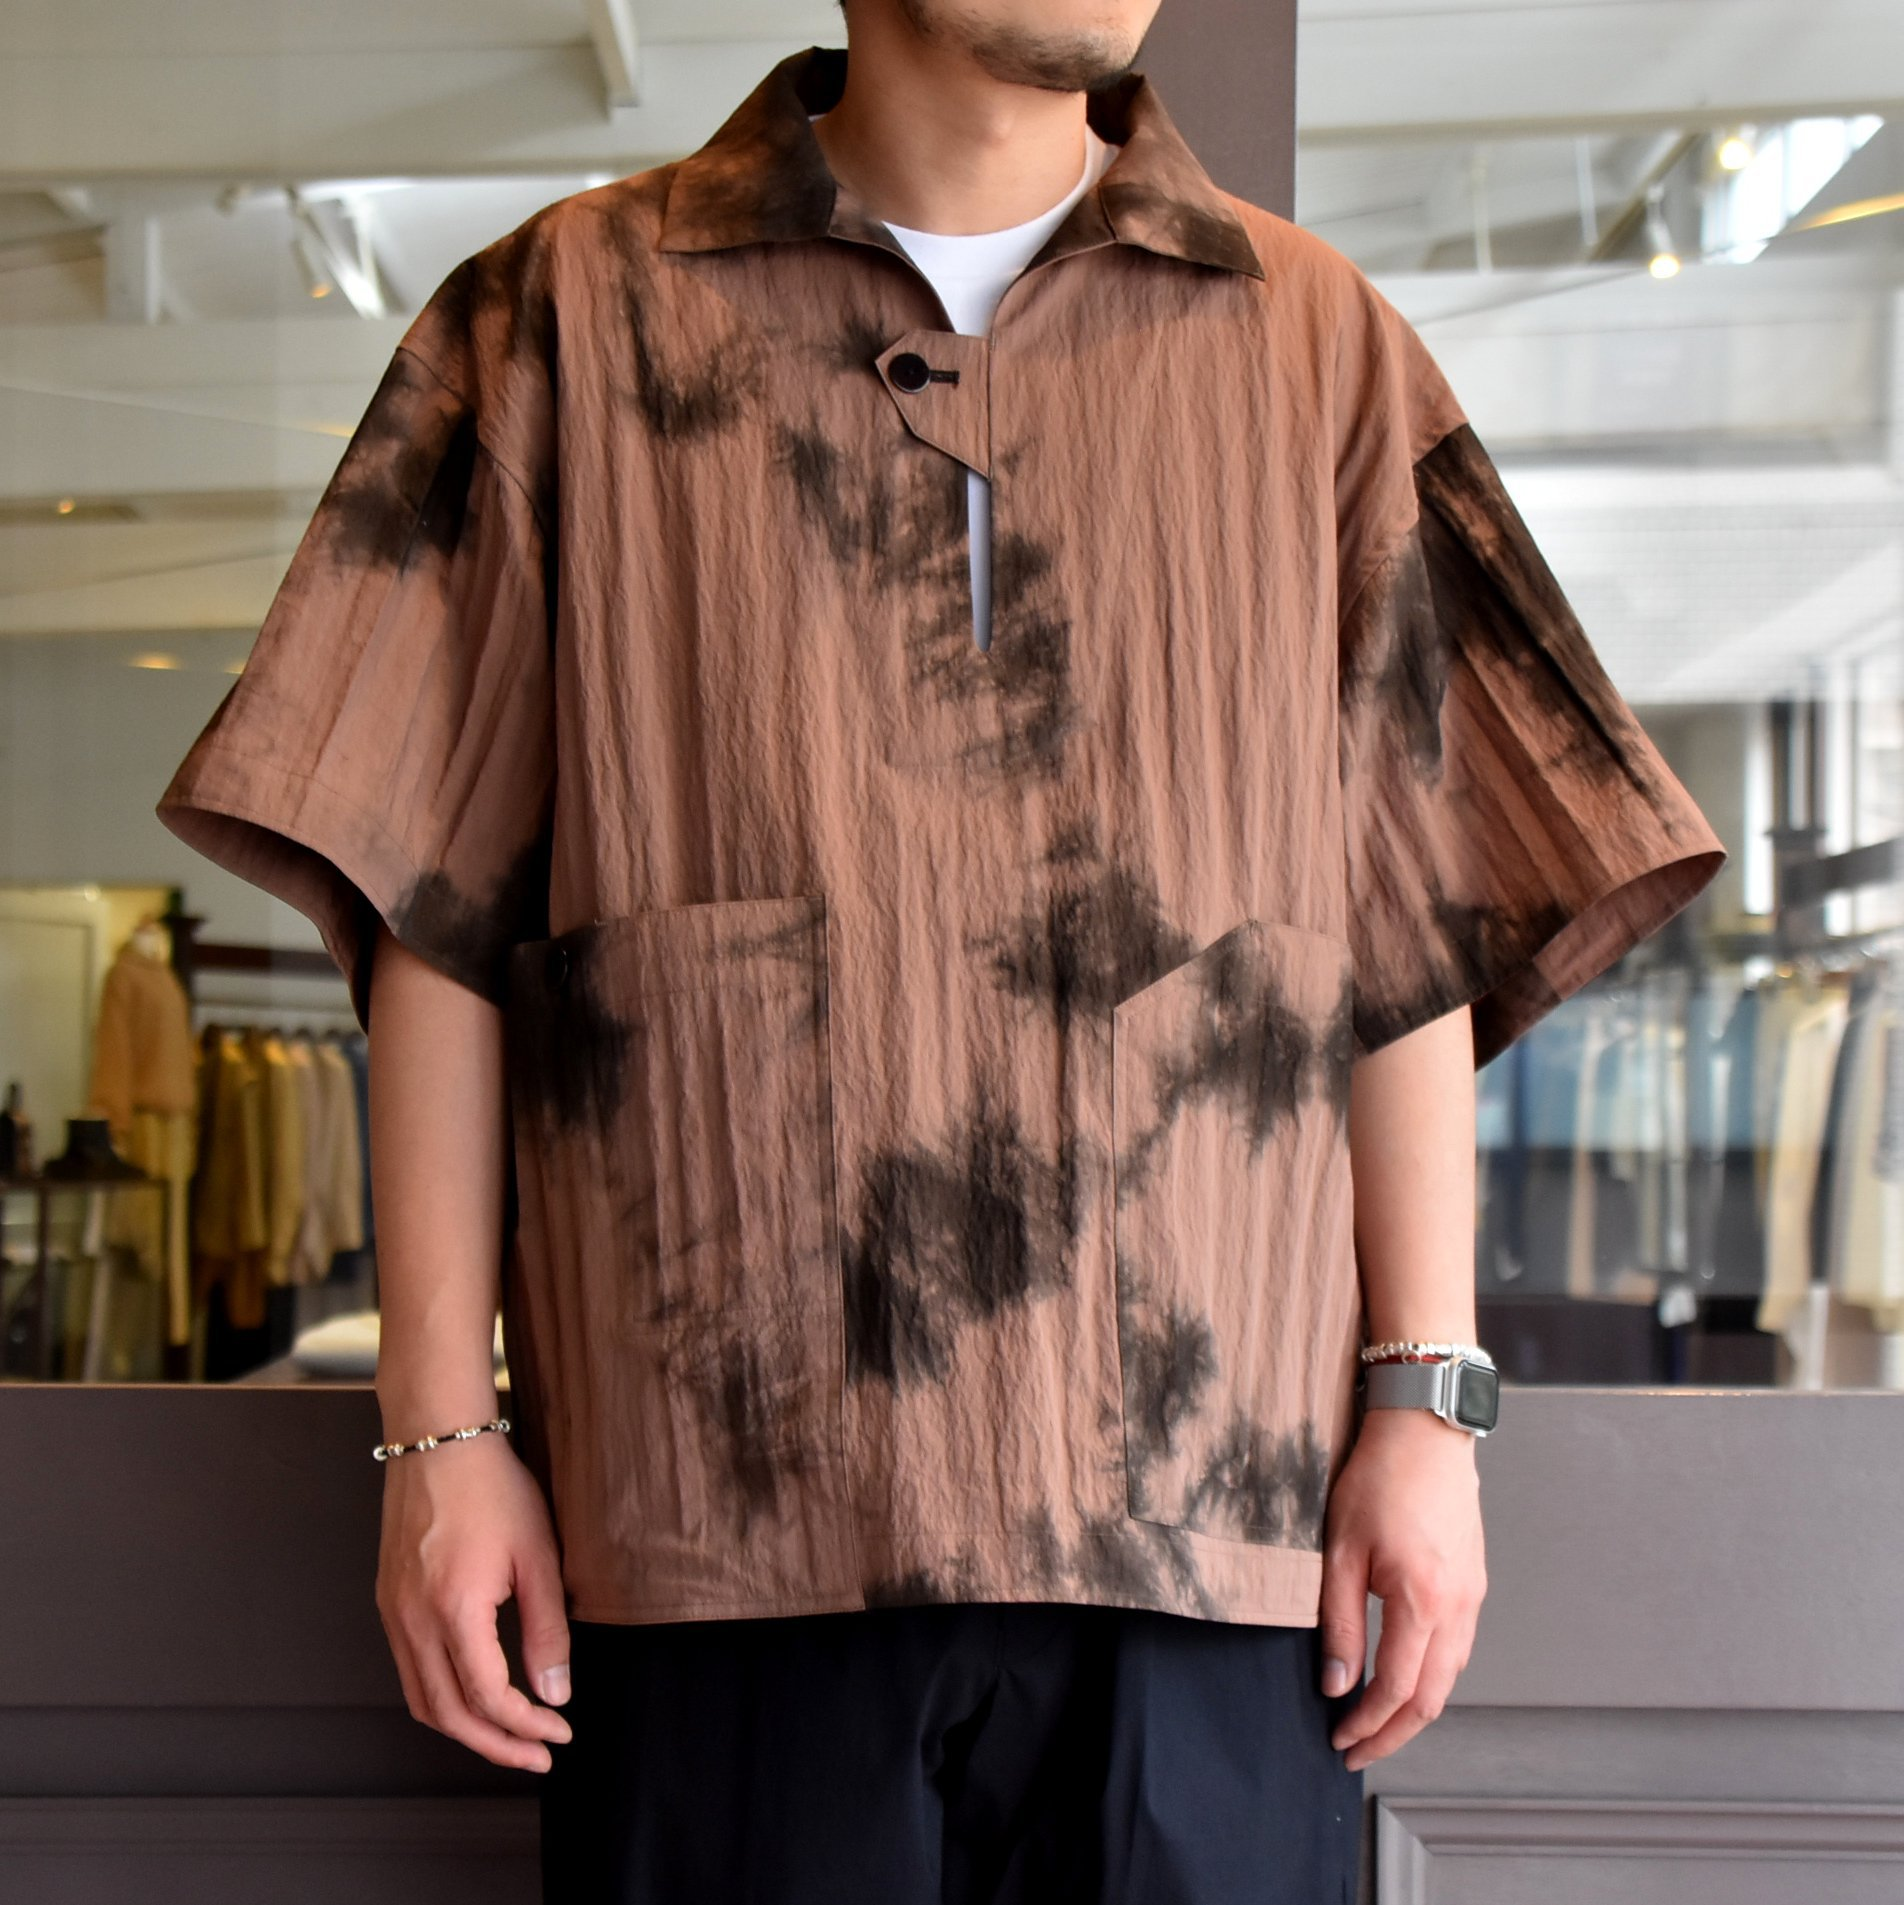 [2021]amachi.(アマチ) Packable Meeting Shirt -Brown Uneven Dye- #AY8-14(1)